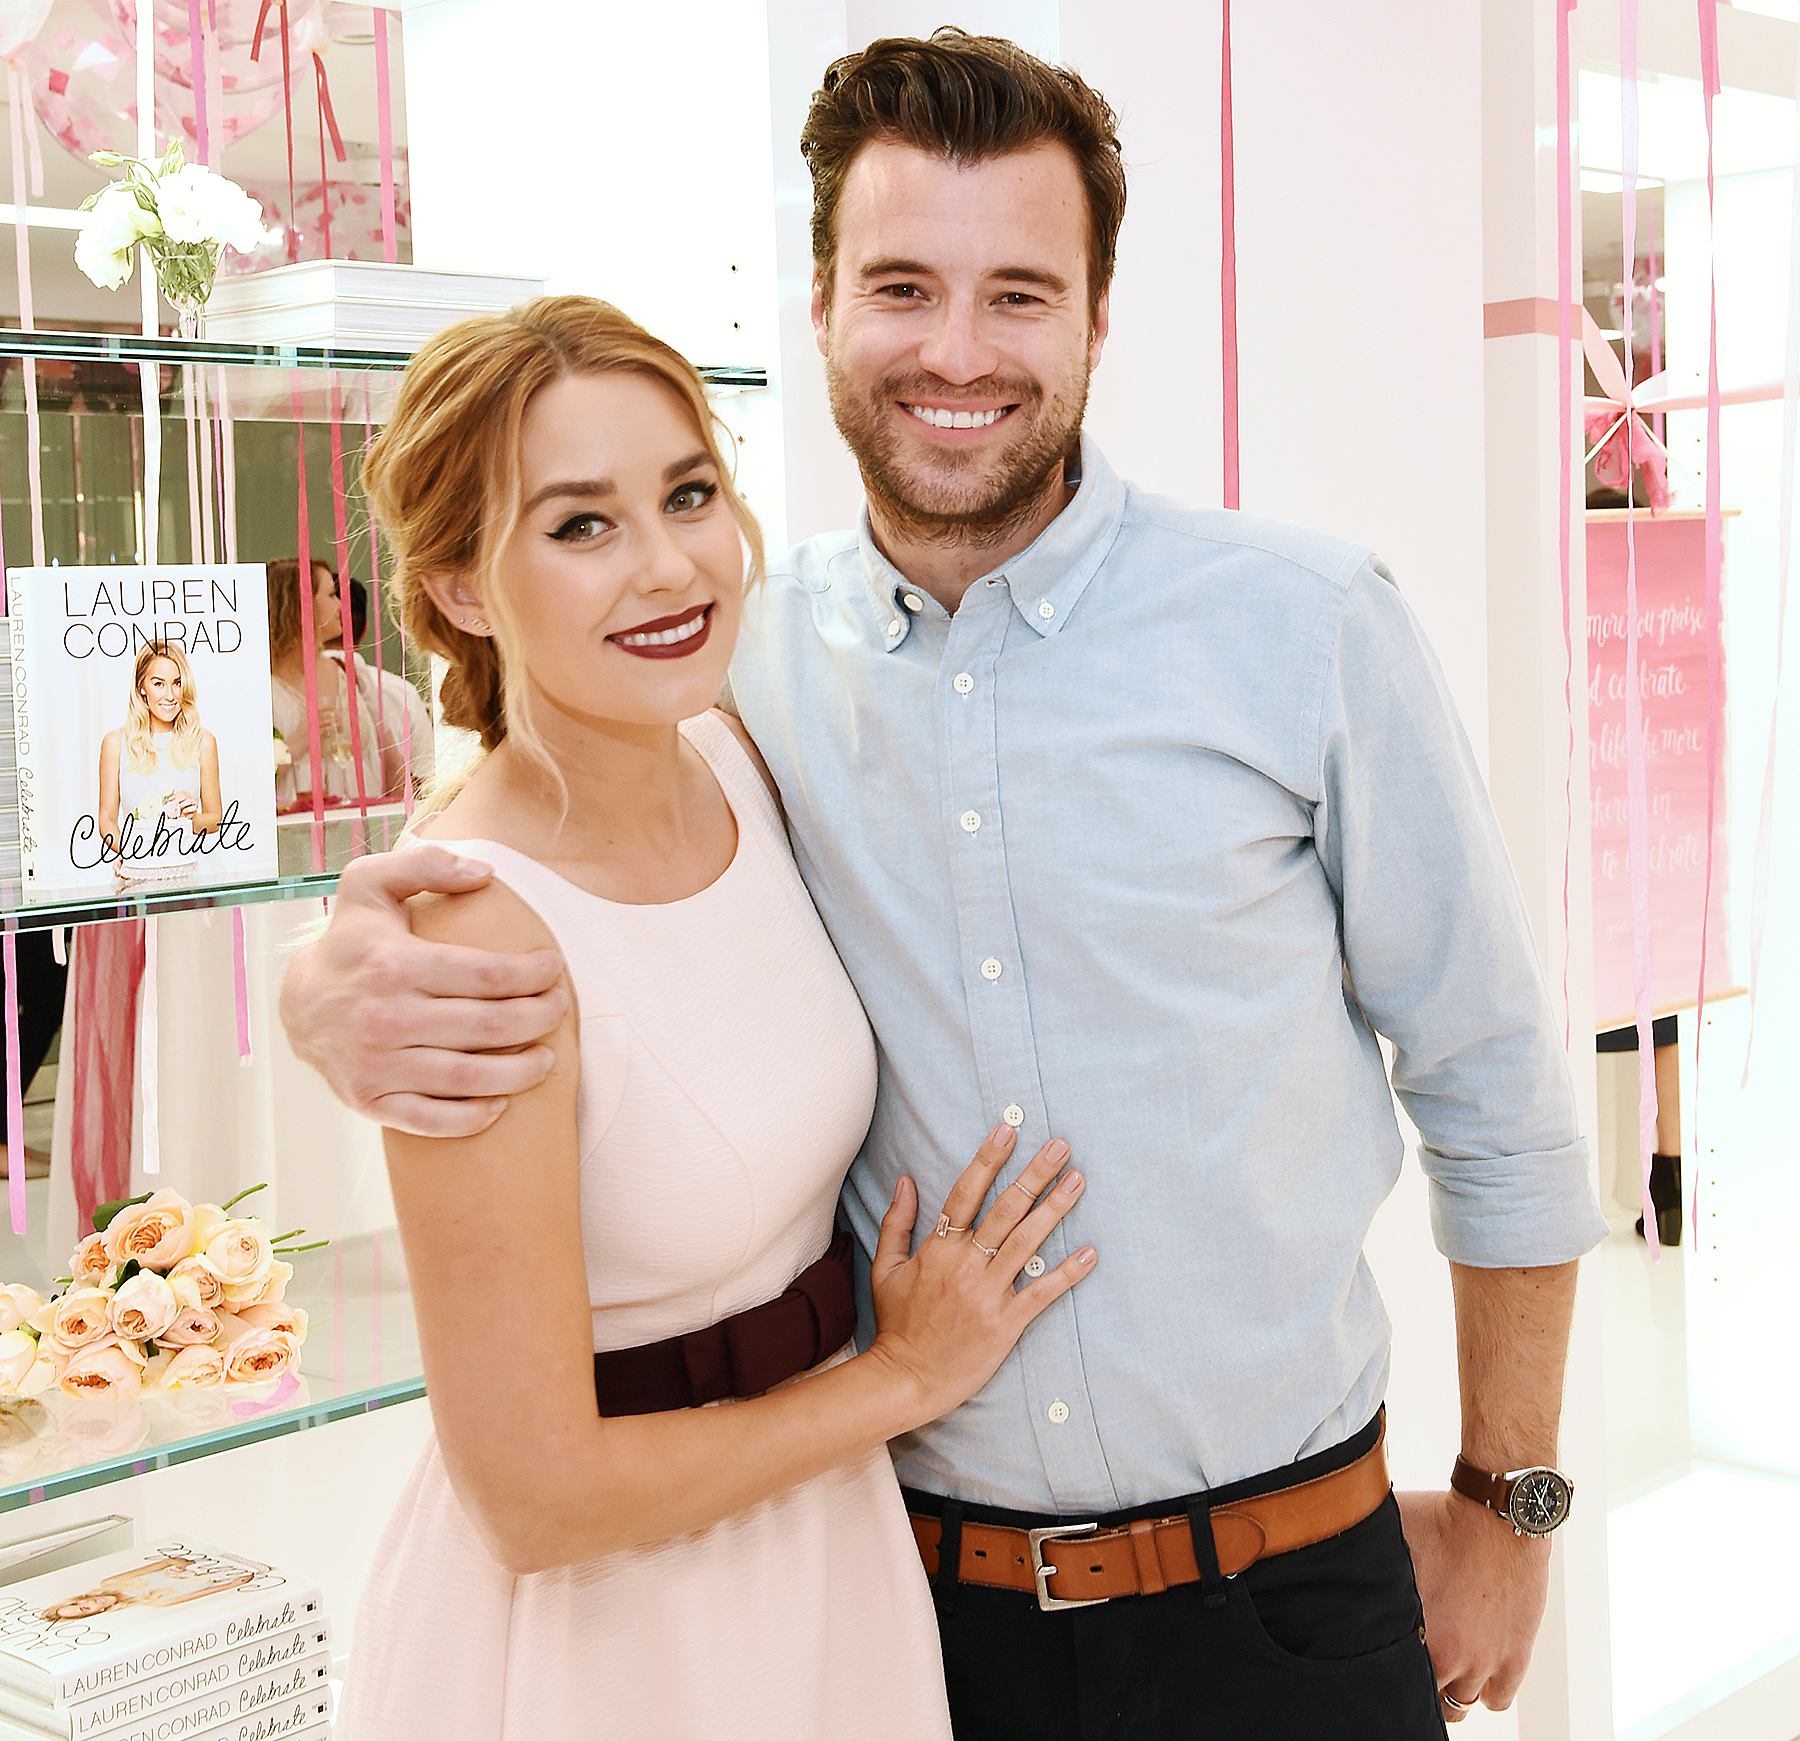 Lauren Conrad William Tell